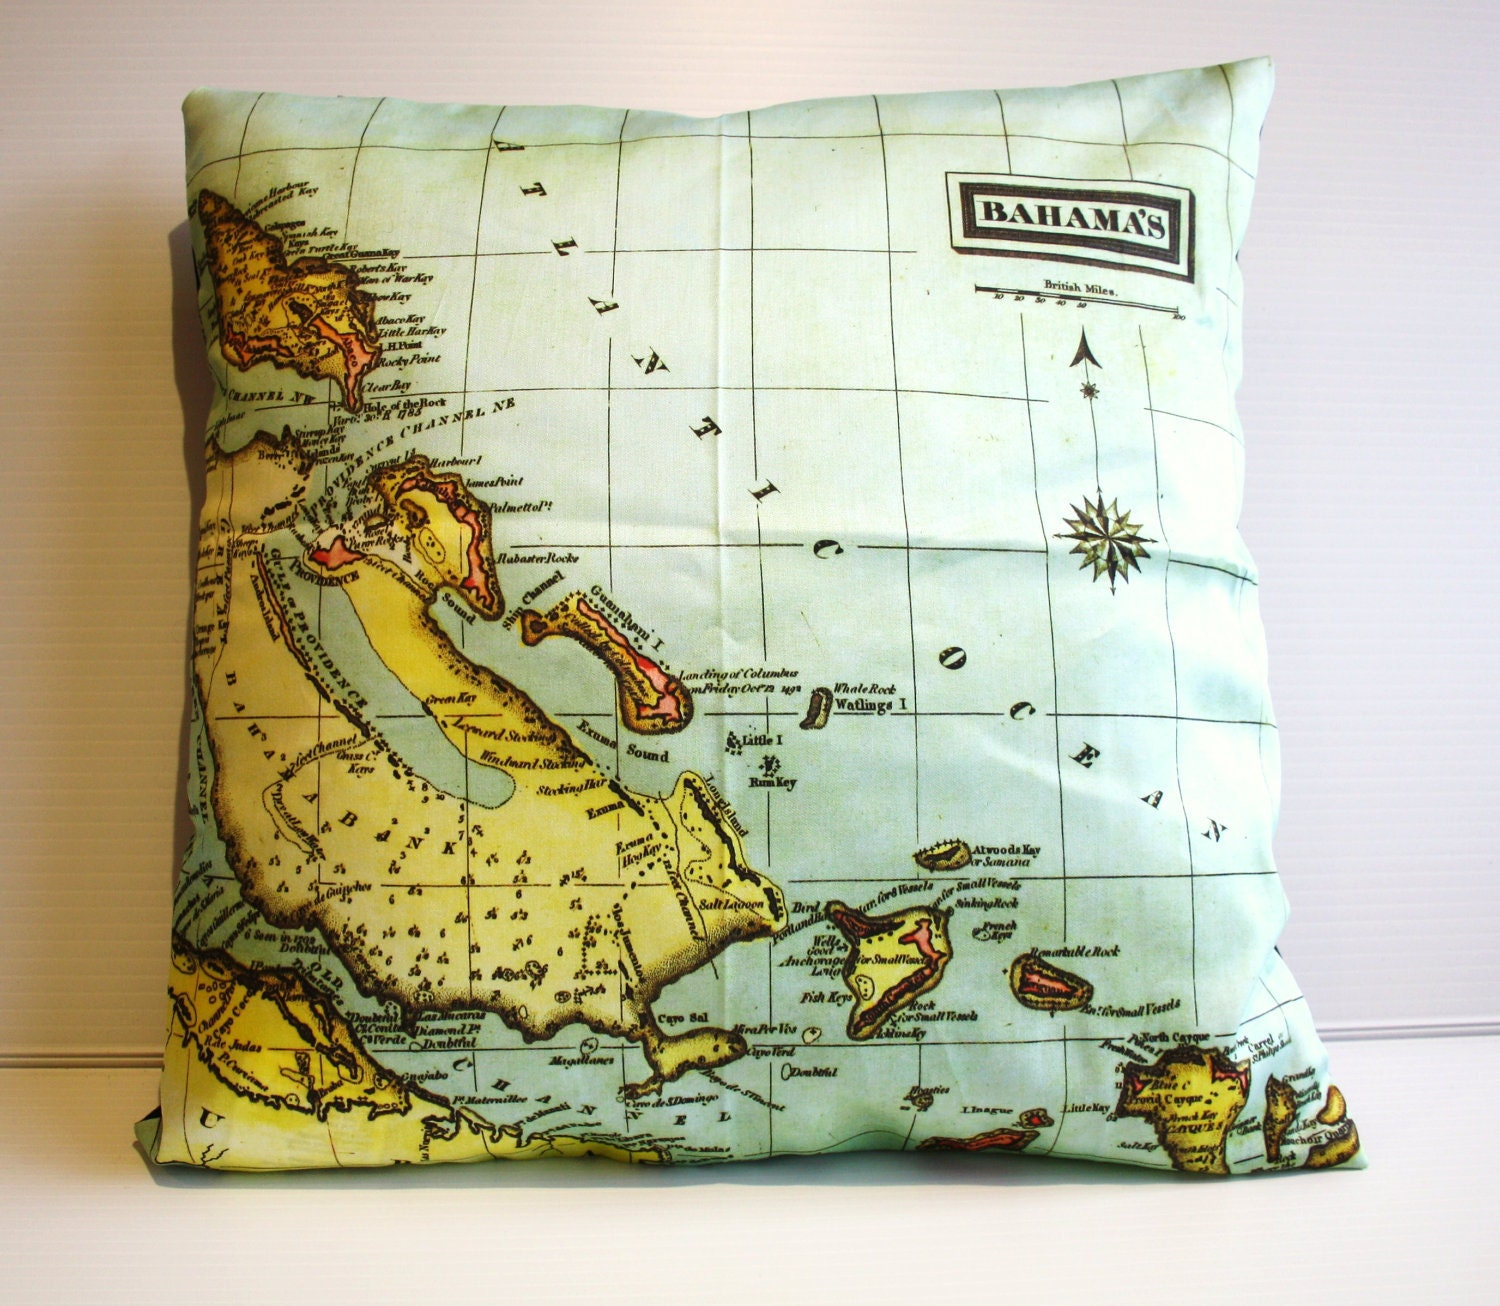 vintage map, cushion THE BAHAMAS organic cotton cushion cover, map cushion, 16 inch, 41cm